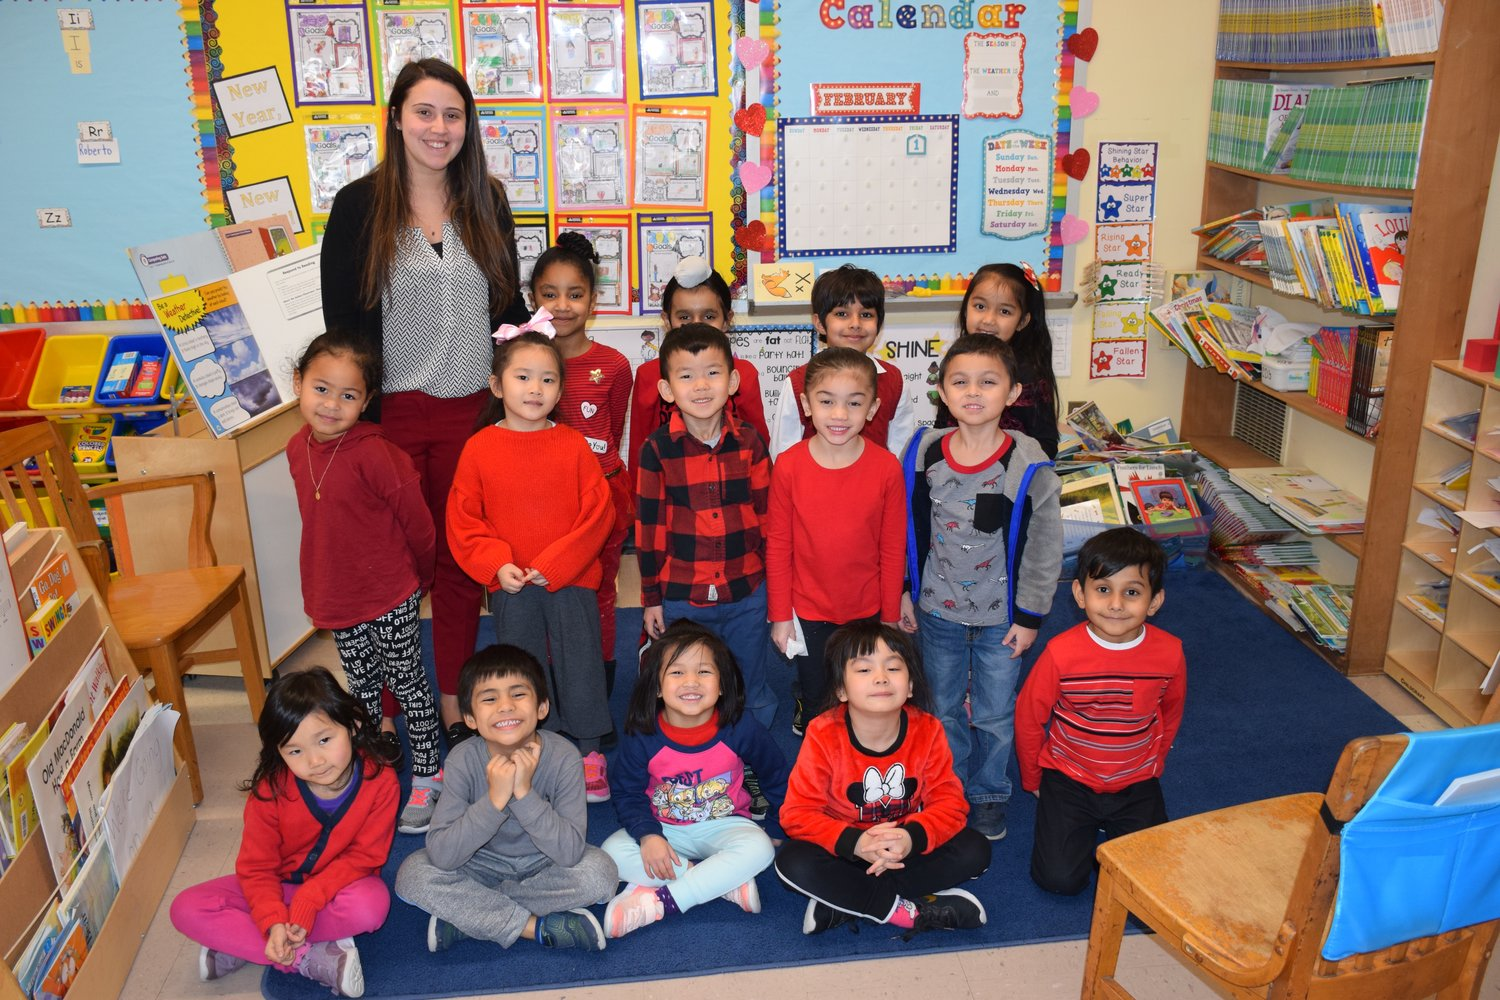 Students and teachers at Bowling Green Elementary School in the East Meadow School District were clad in crimson and scarlet as they all took part in National Wear Red Day on Feb. 1 to help spread awareness about heart disease.